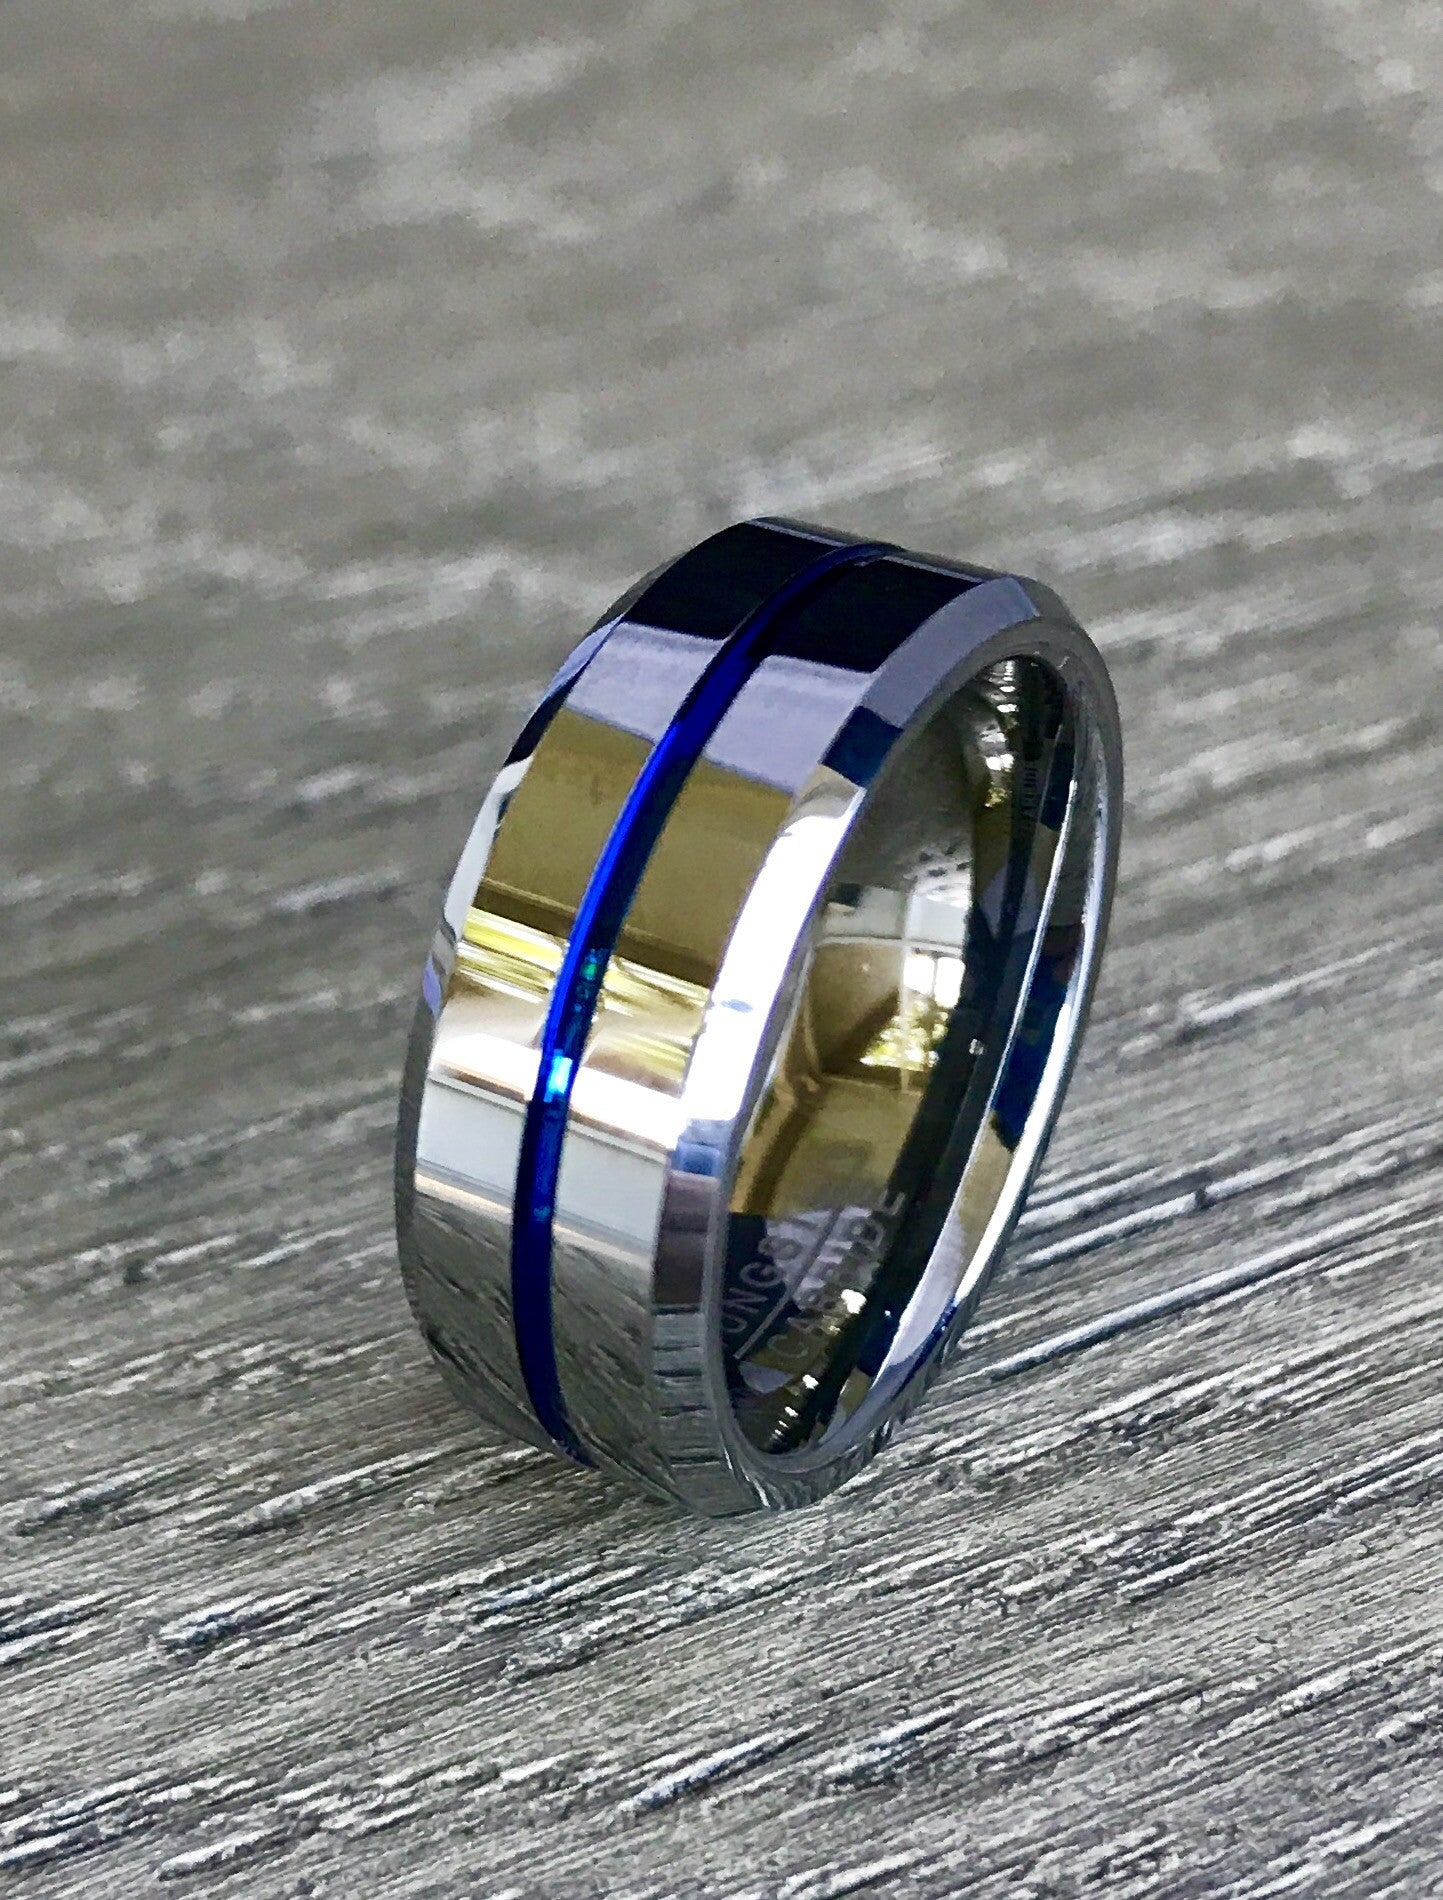 brushed carbide ring jewellery with besttohave interior tungsten image black and wedding grey band rings gold mens rose gunmetal